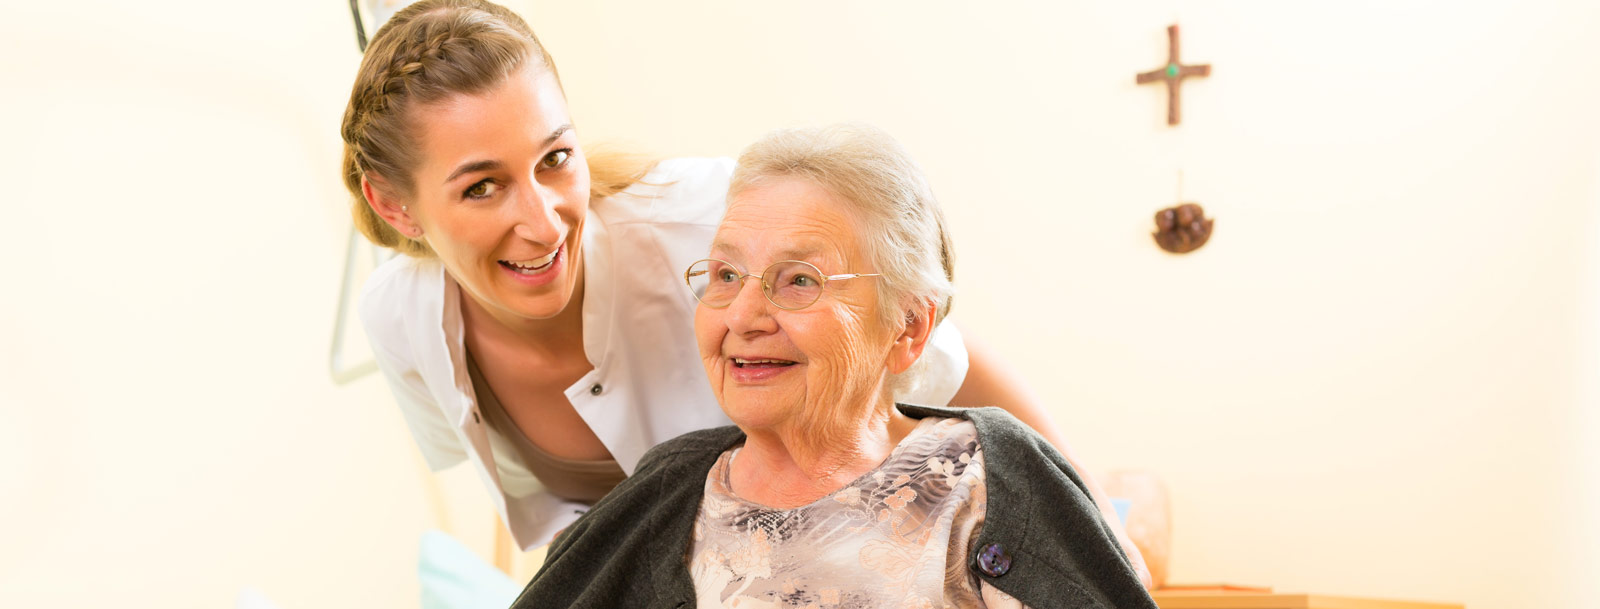 Clay Center senior living facility offers adult day services for you or your family